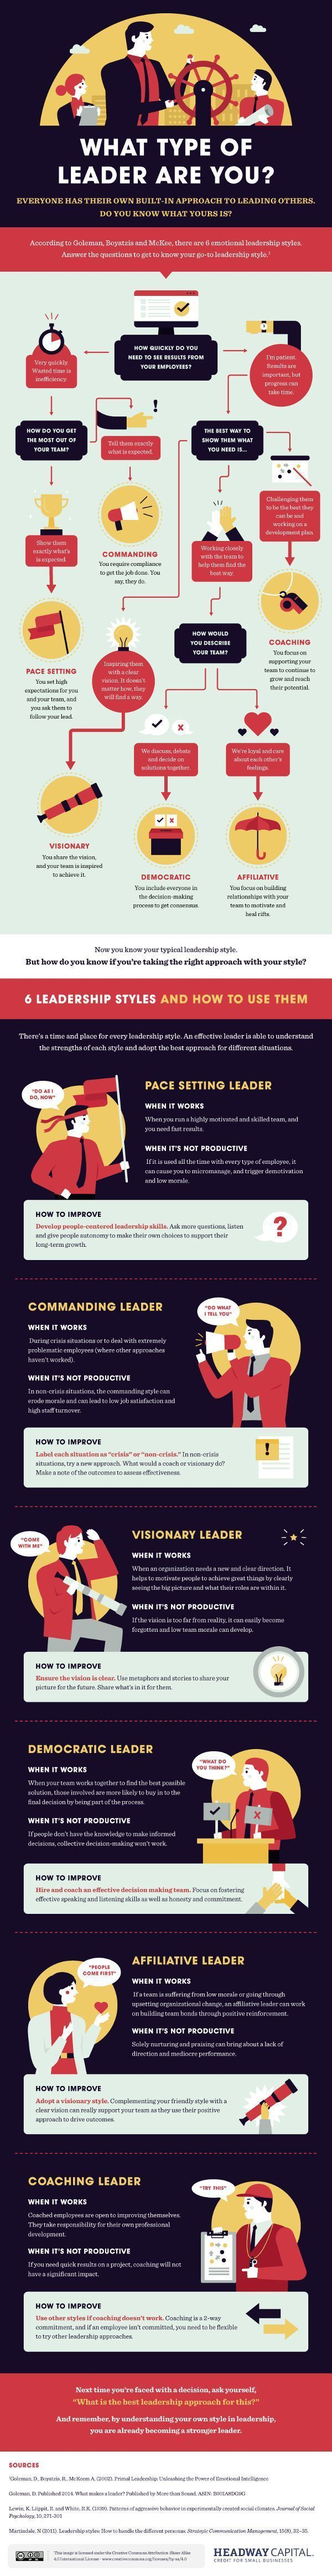 Different business leaders have different leadership styles. Which types of leaders are effective under which circumstances? And what type of leader are you? Take the quiz in this infographic to find out. #masterofbusiness